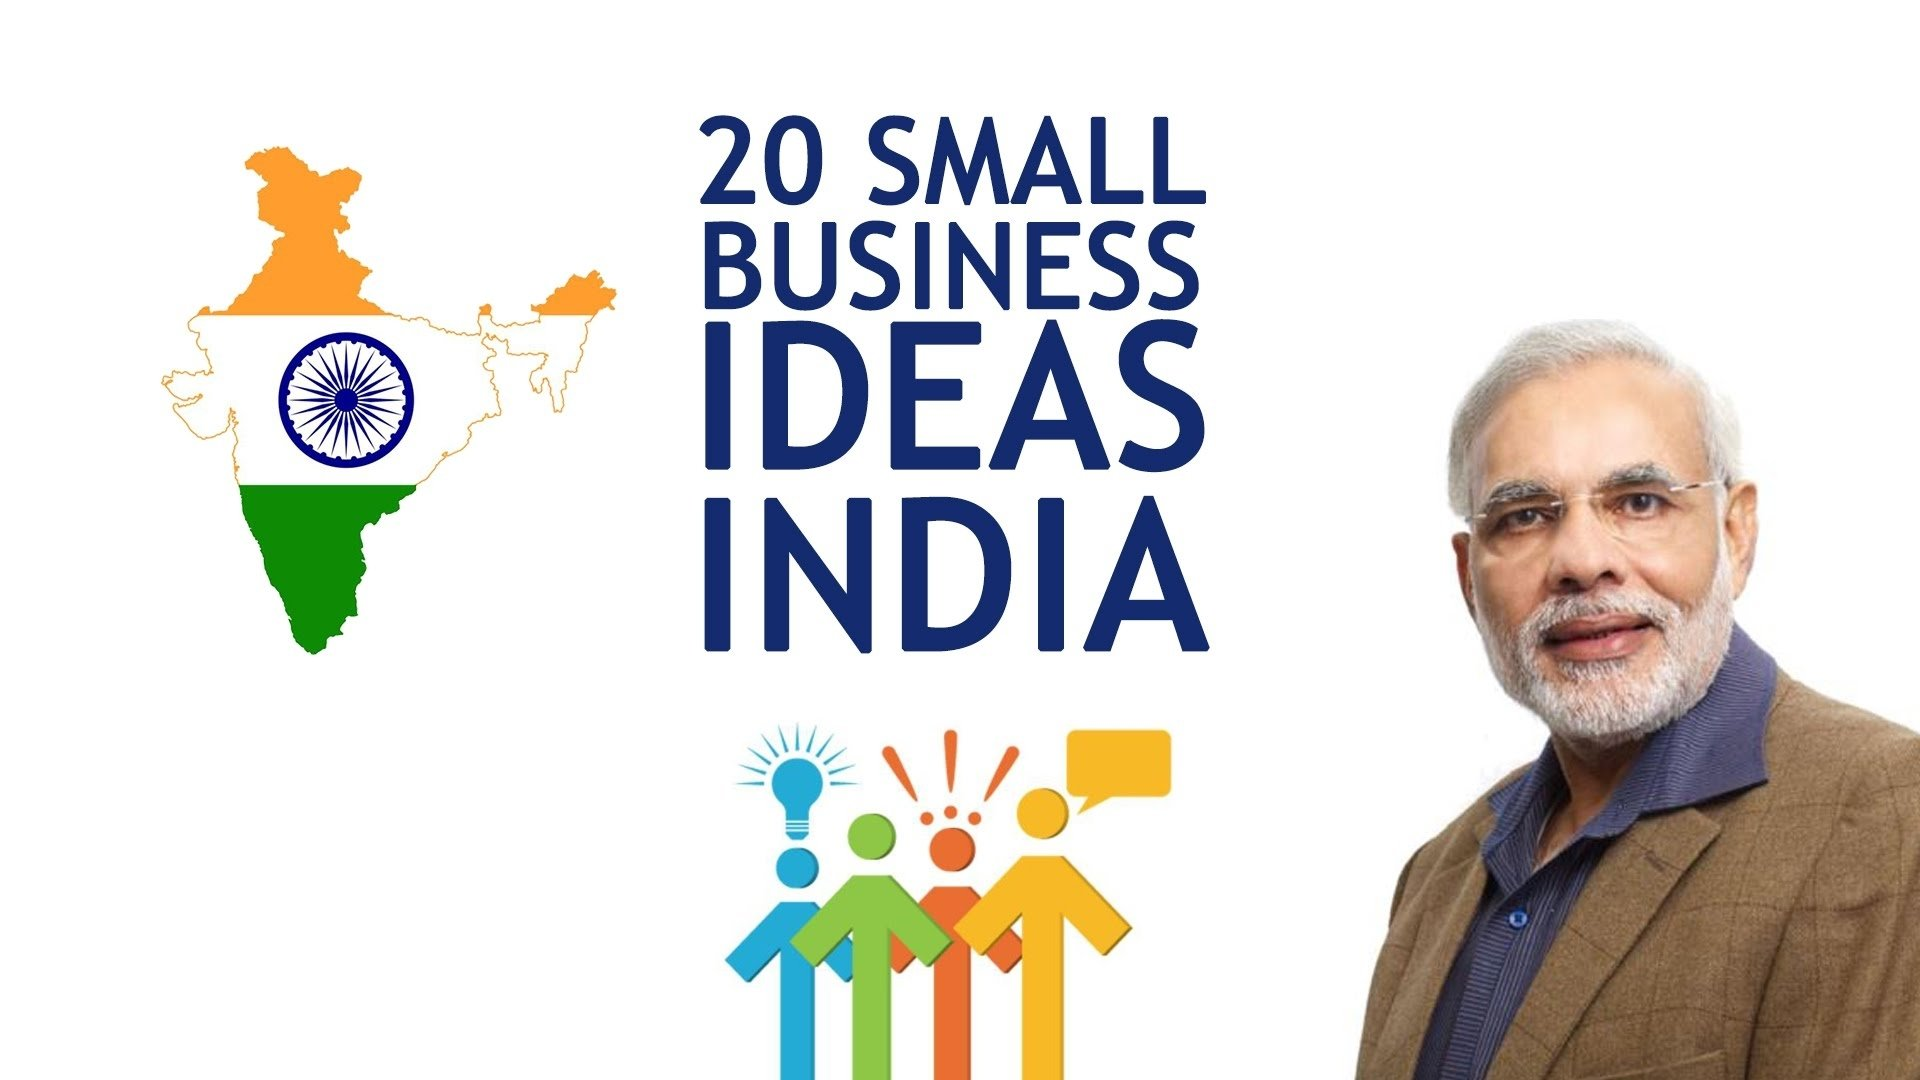 10 Nice New Home Based Business Ideas top 20 best small business ideas in india youtube 10 2021